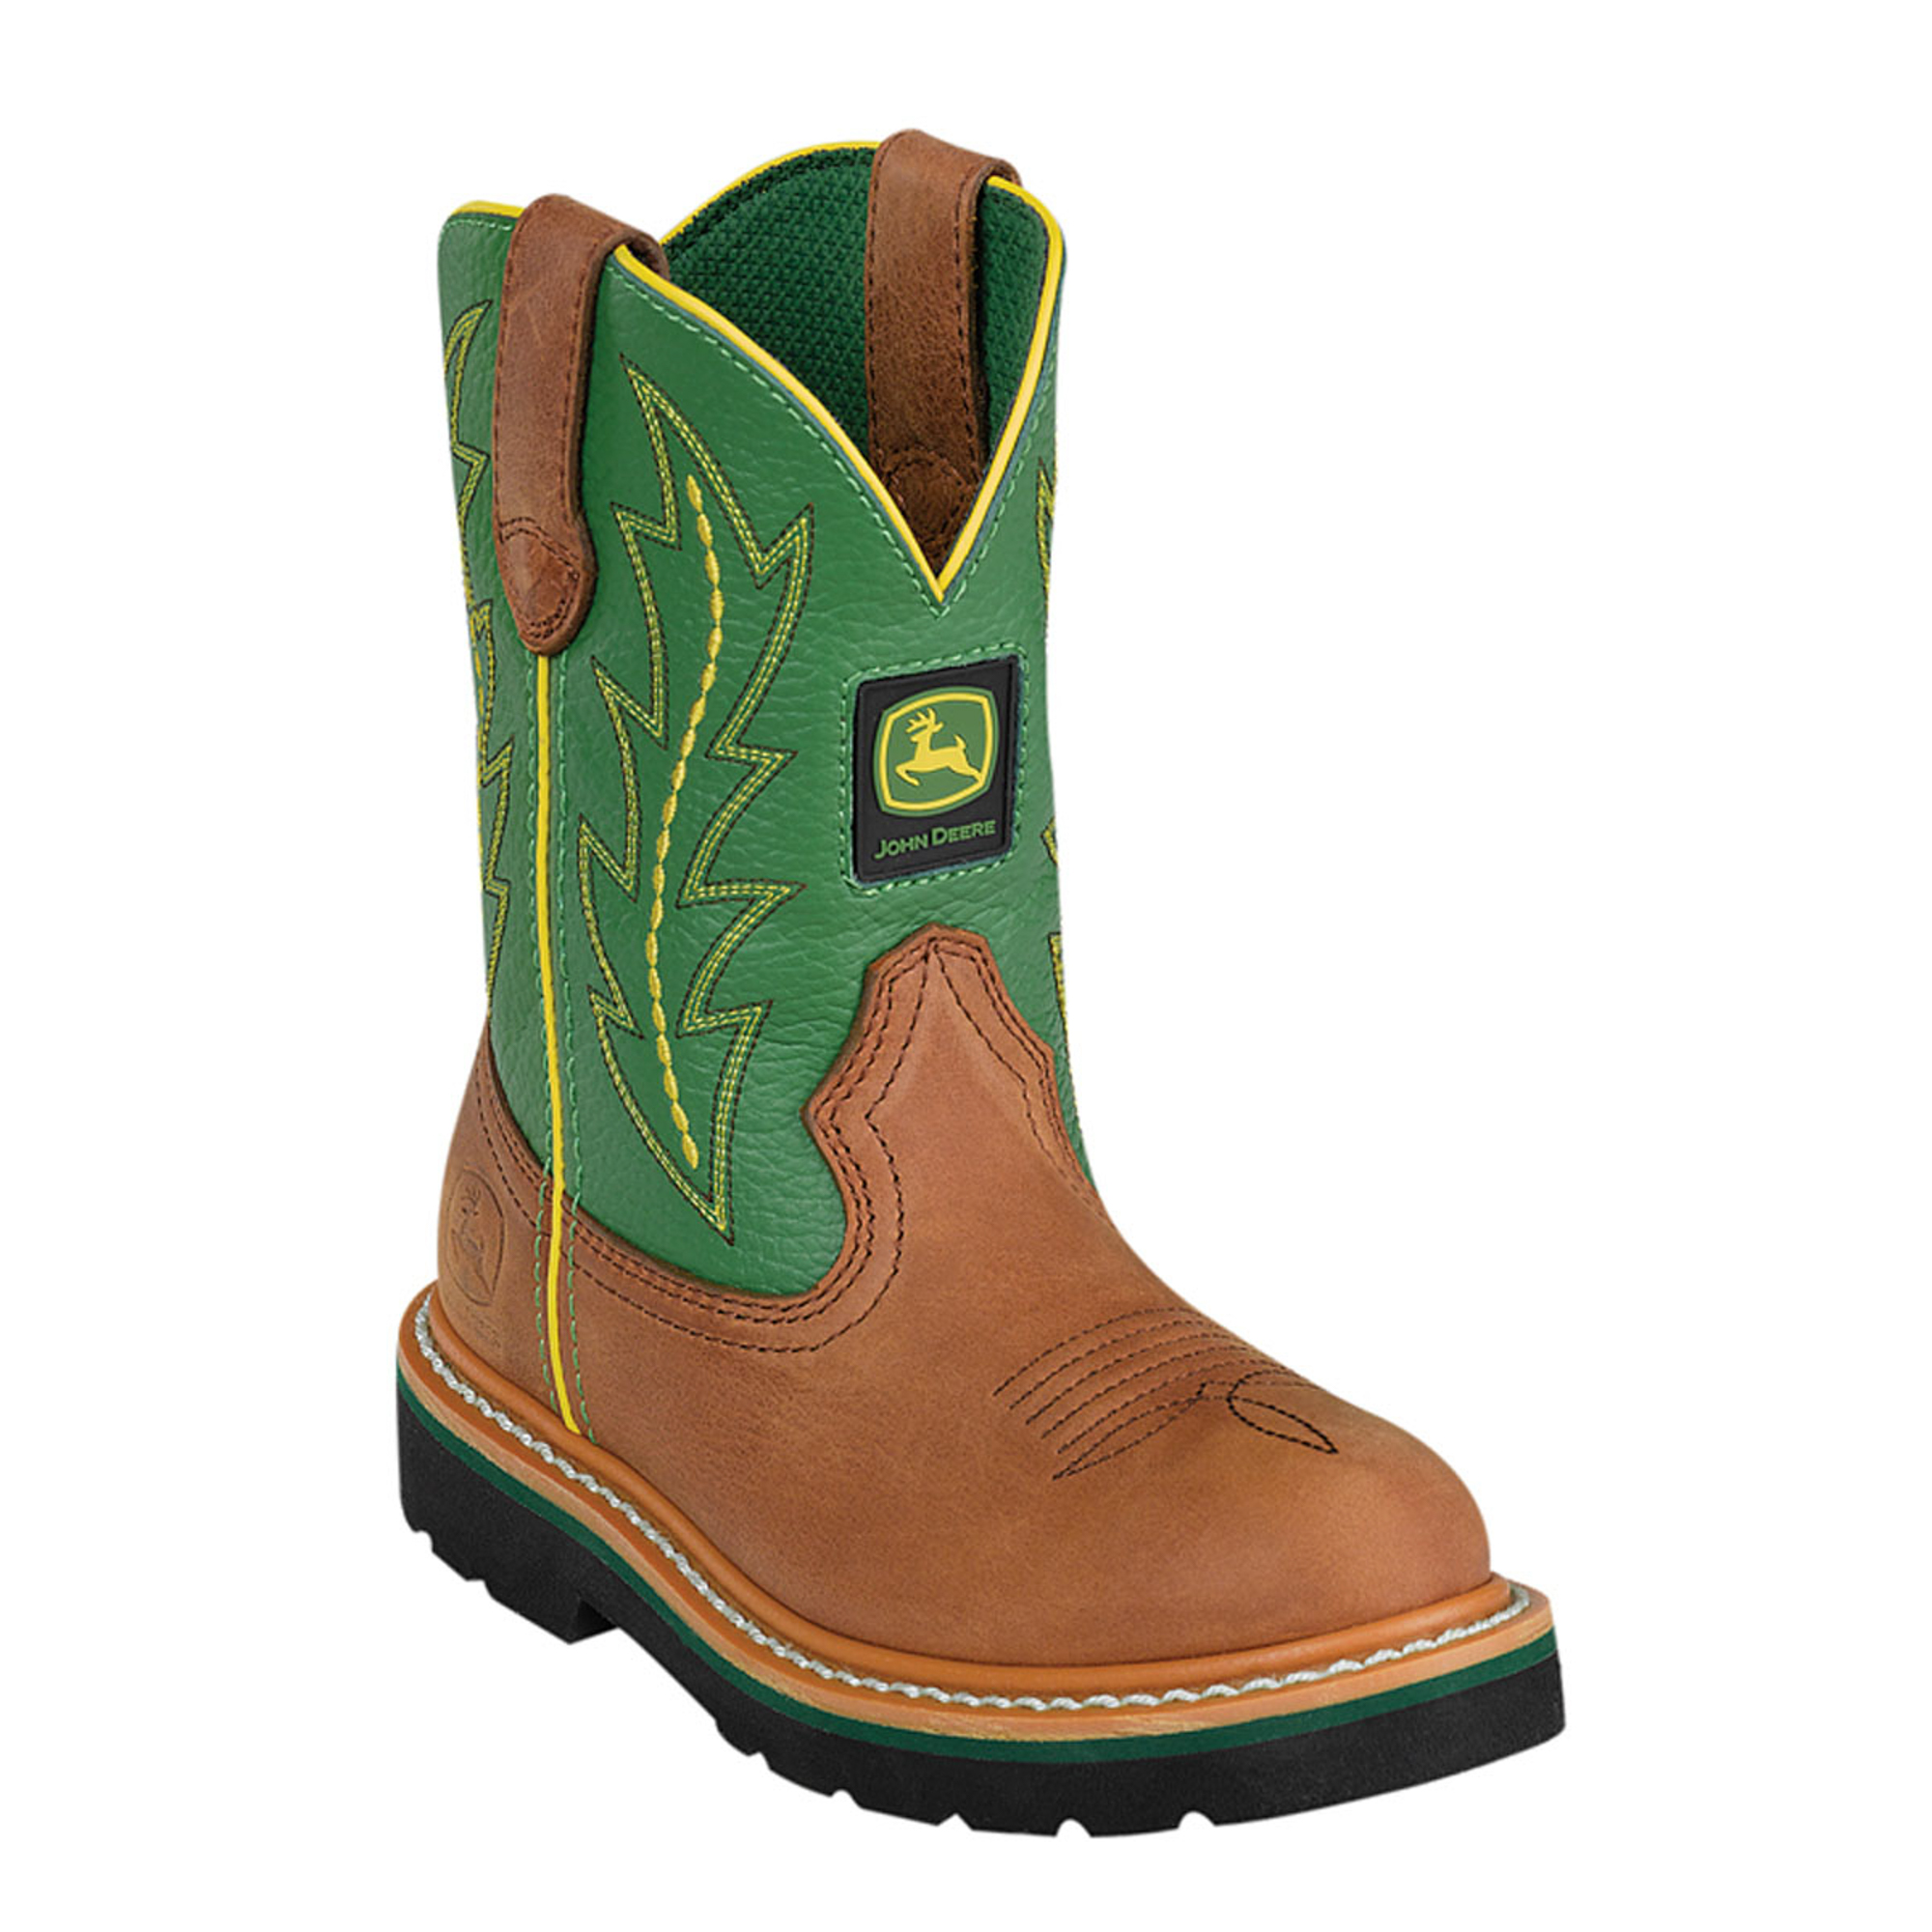 ... about John Deere Youth Boys Green Leather Classic Pull-On Cowboy Boots